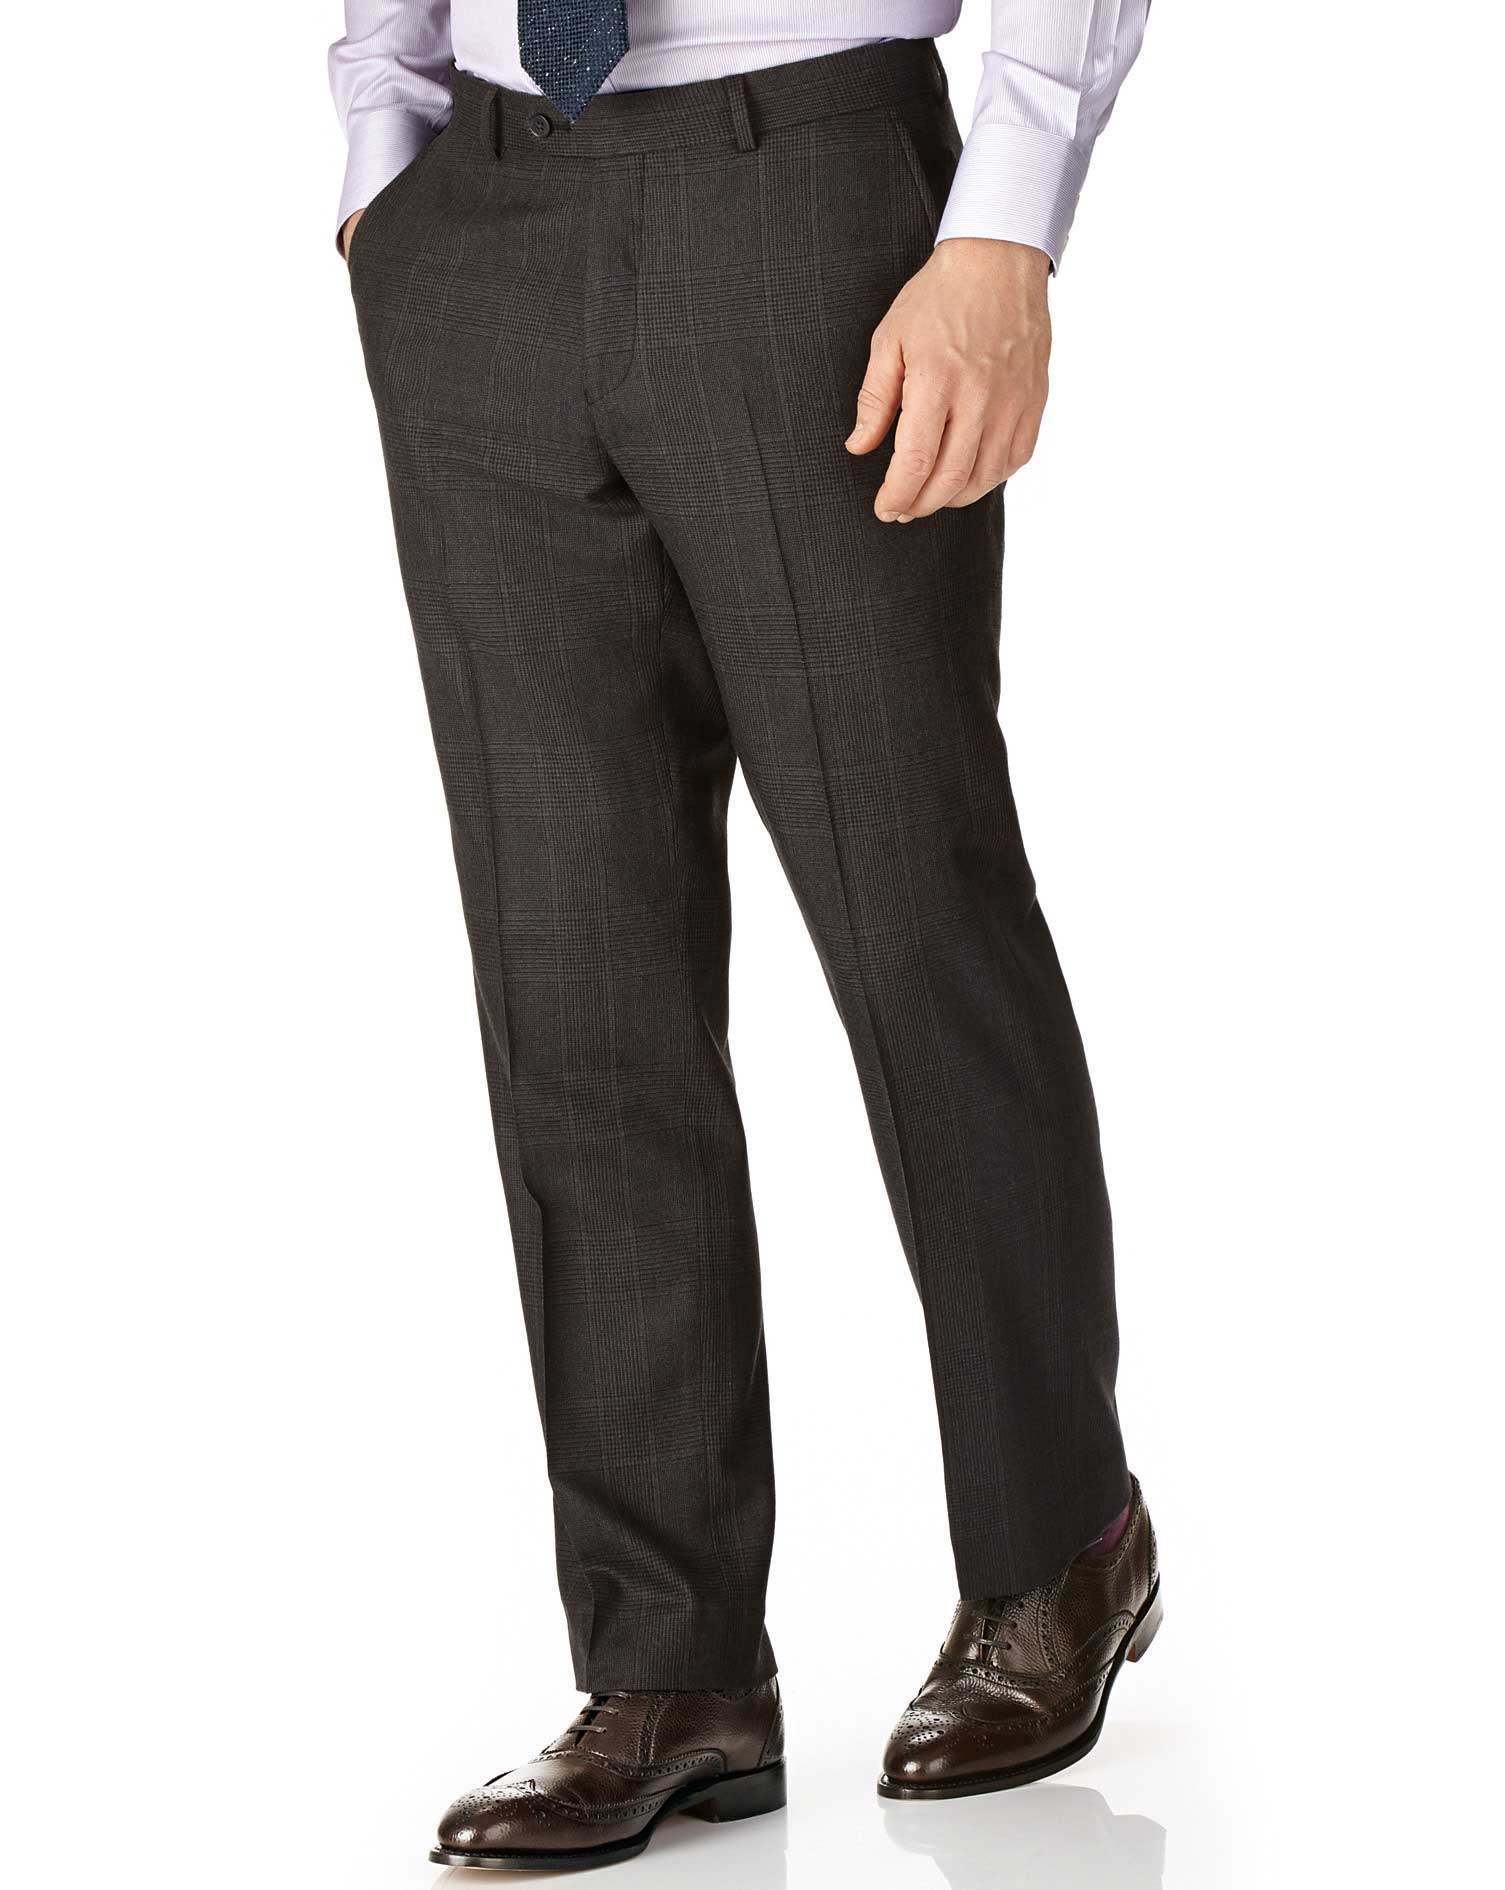 Dark Grey Classic Fit Saxony Business Suit Trousers Size W34 L38 by Charles Tyrwhitt